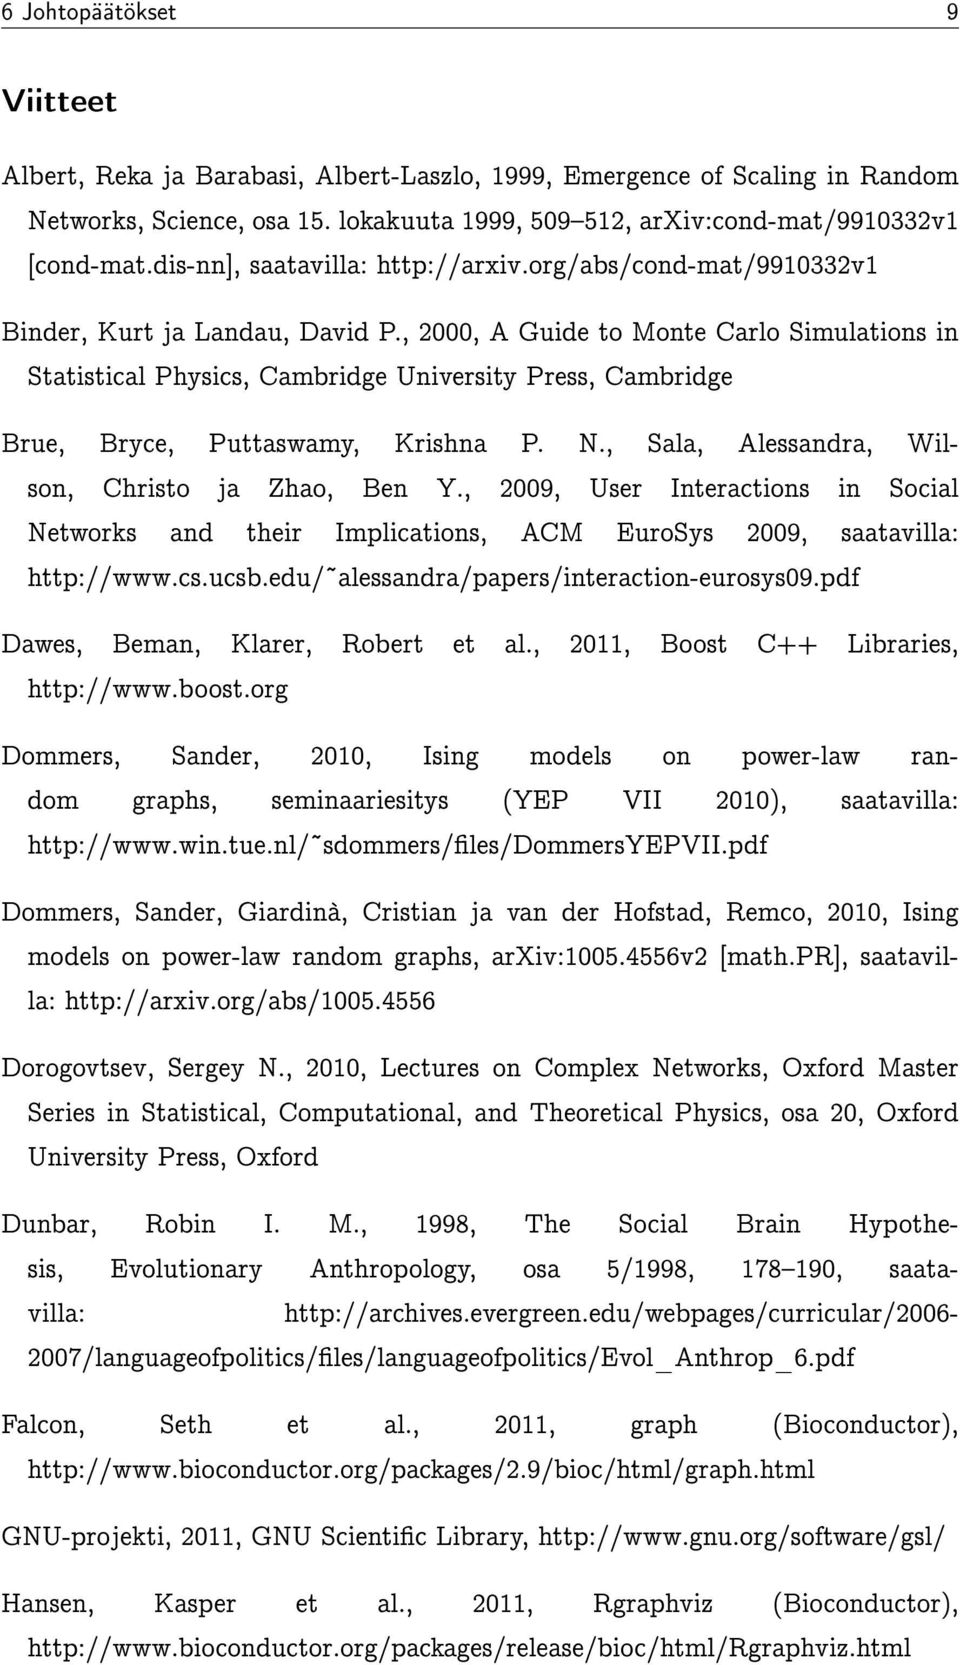 , 2000, A Guide to Monte Carlo Simulations in Statistical Physics, Cambridge University Press, Cambridge Brue, Bryce, Puttaswamy, Krishna P. N., Sala, Alessandra, Wilson, Christo ja Zhao, Ben Y.